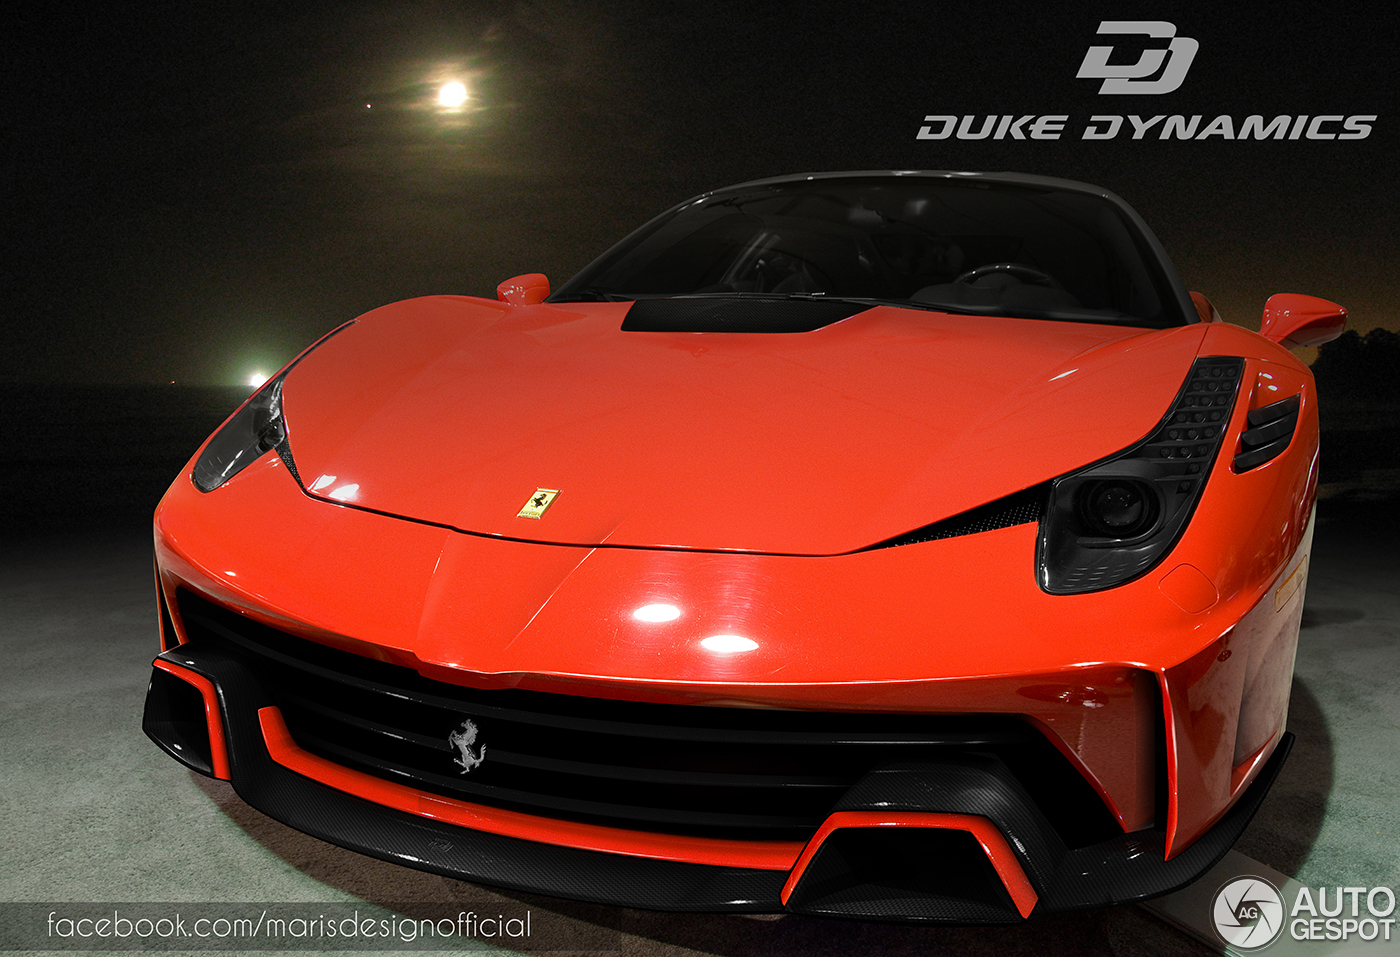 Duke Dynamics Tunes The Ferrari 458 Italia